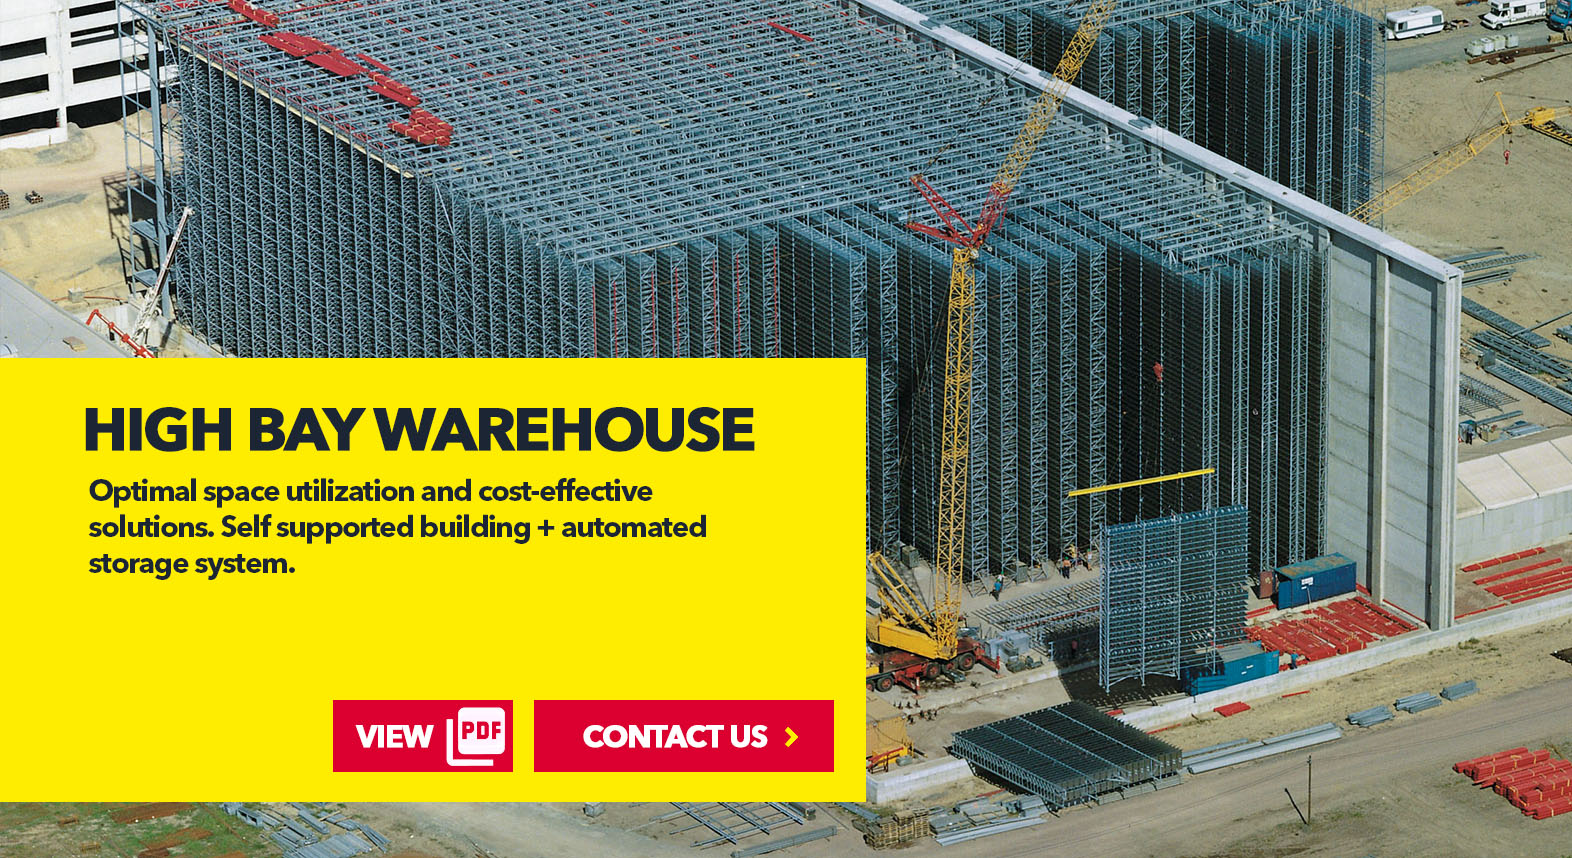 Pallet High Bay Warehouse by SSI Schaefer USA Download Guide, Watch Video, Contact Us. www.chaefershelving.com